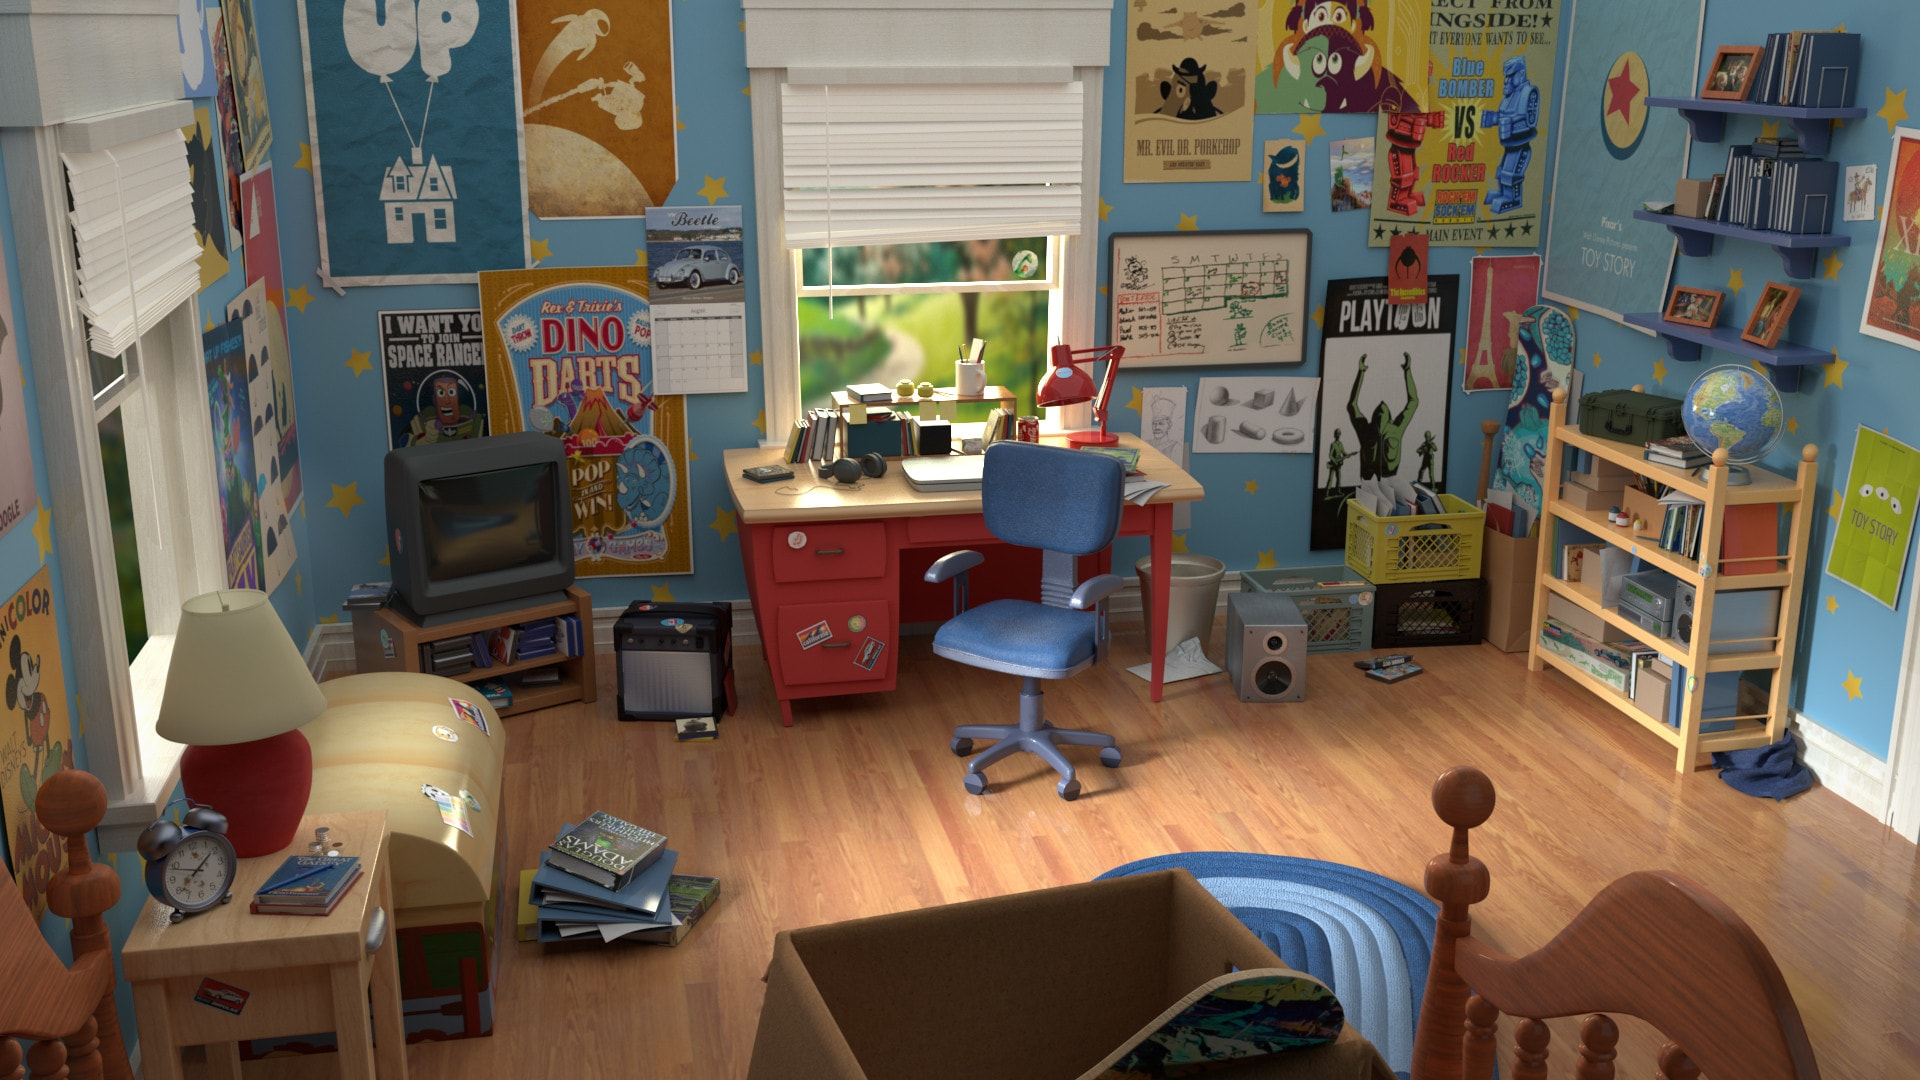 Tokyo Disney Resort Toy Story Hotel - Andy's room in the movie